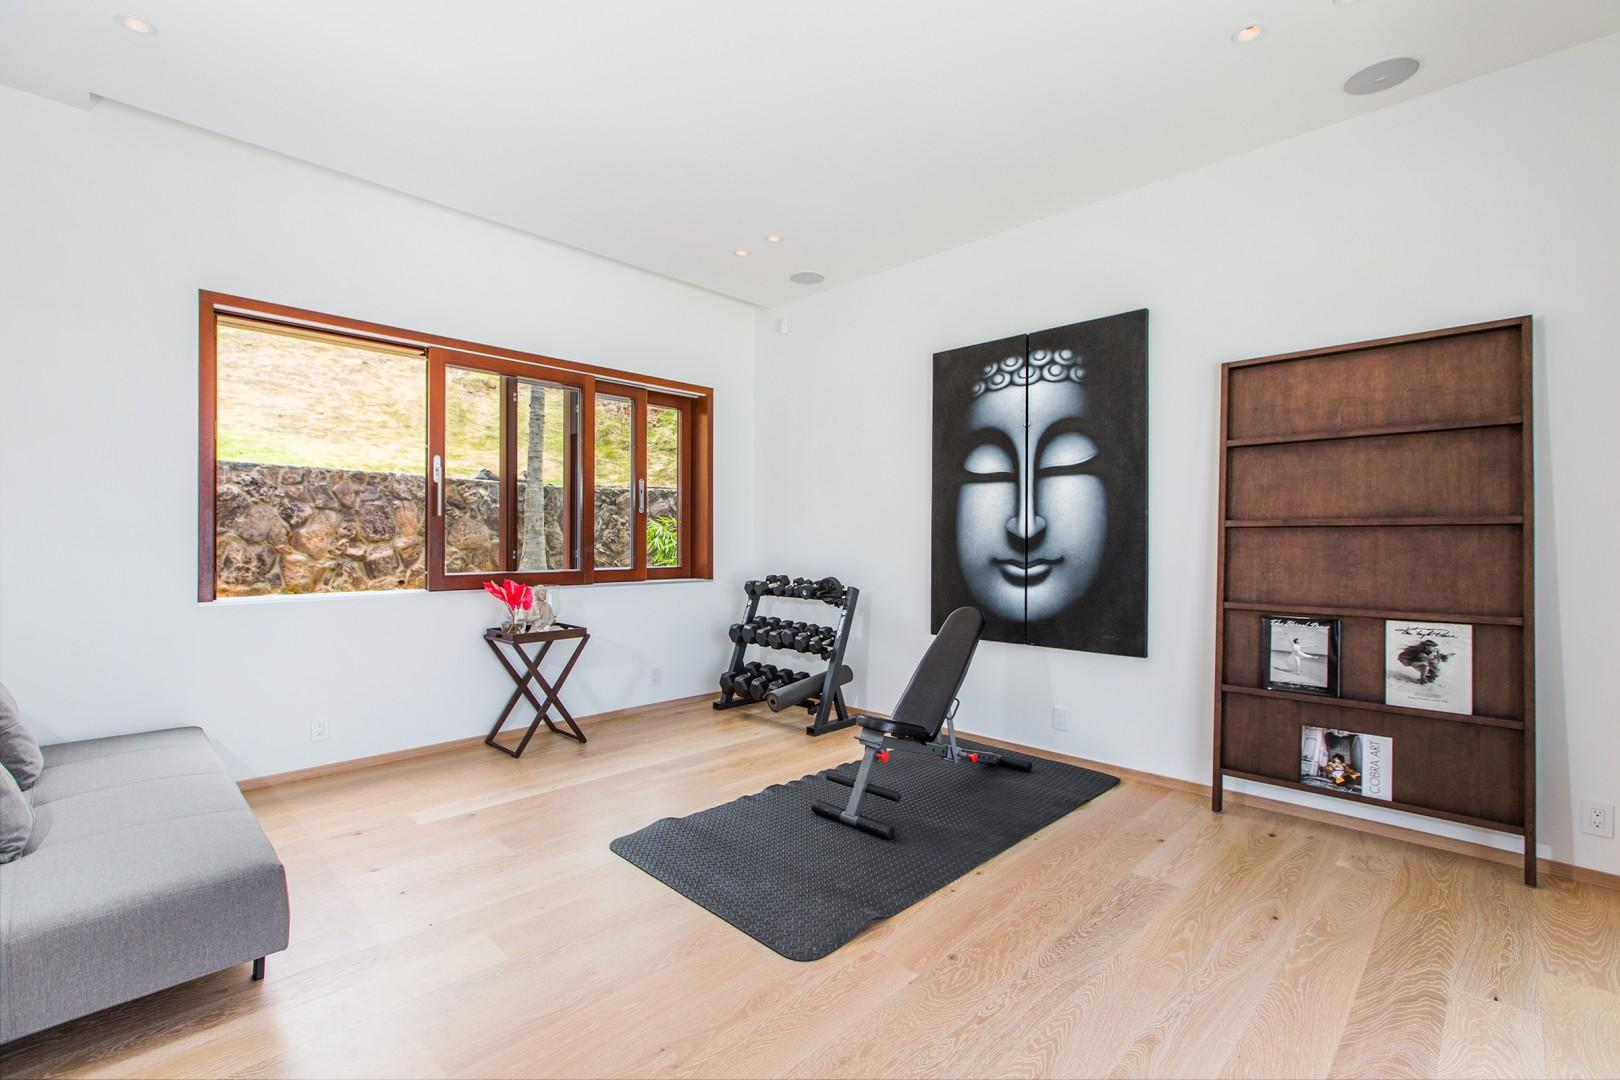 Gym/Yoga Room - Equipment must be rented